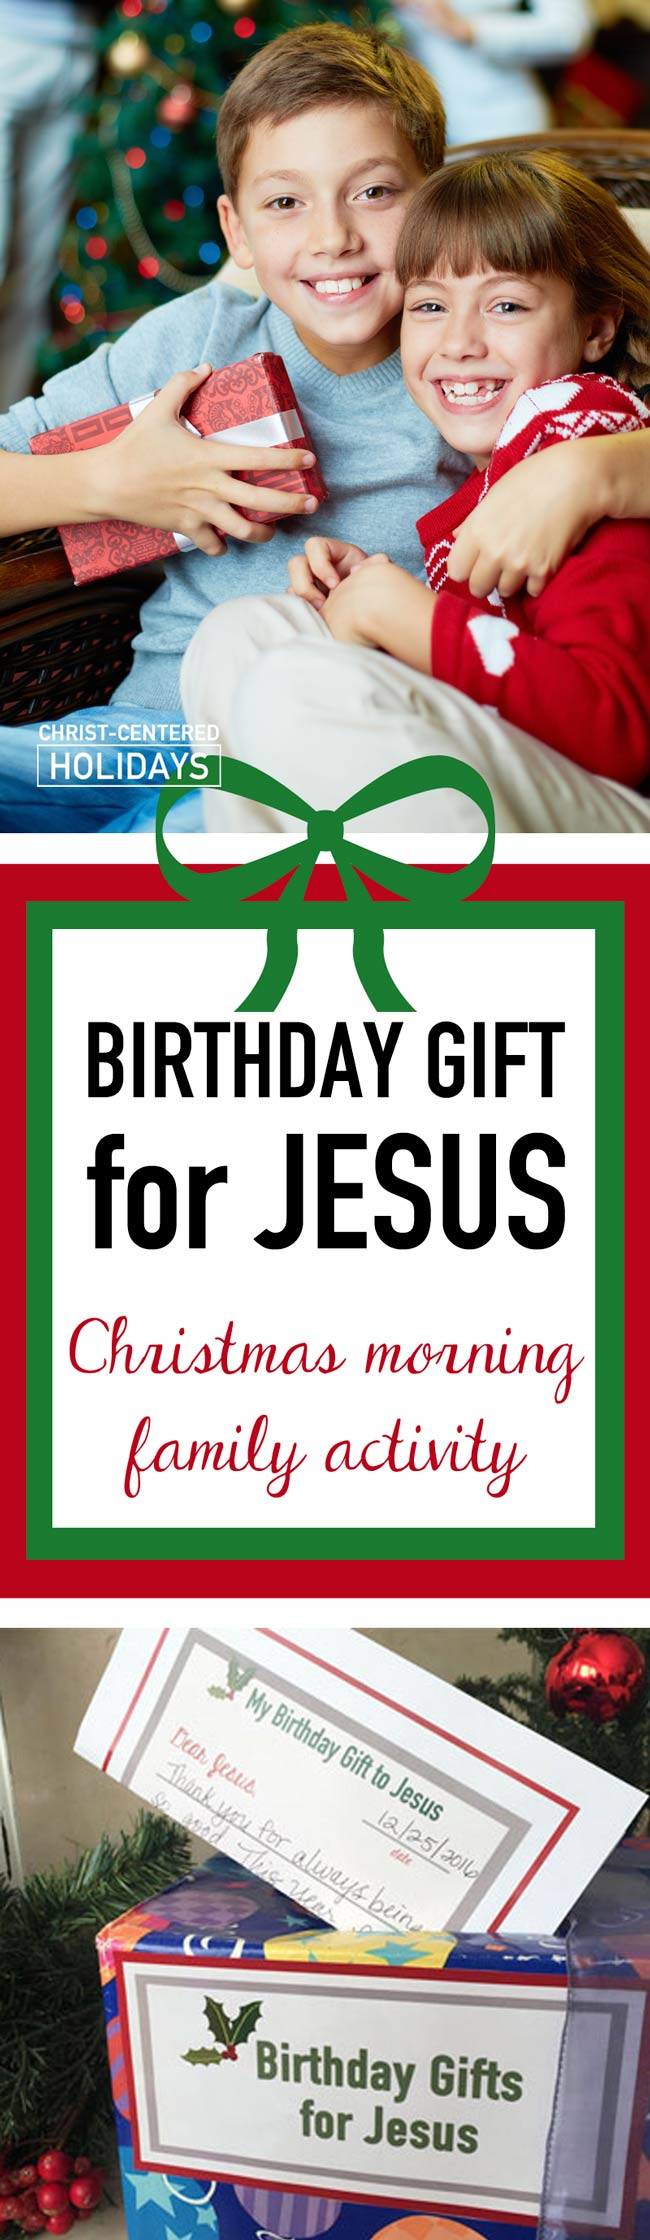 Enjoy this awesome Happy Birthday Jesus activity—birthday gifts for Jesus on Christmas morning! What a wonderful Christmas family tradition to start this year!